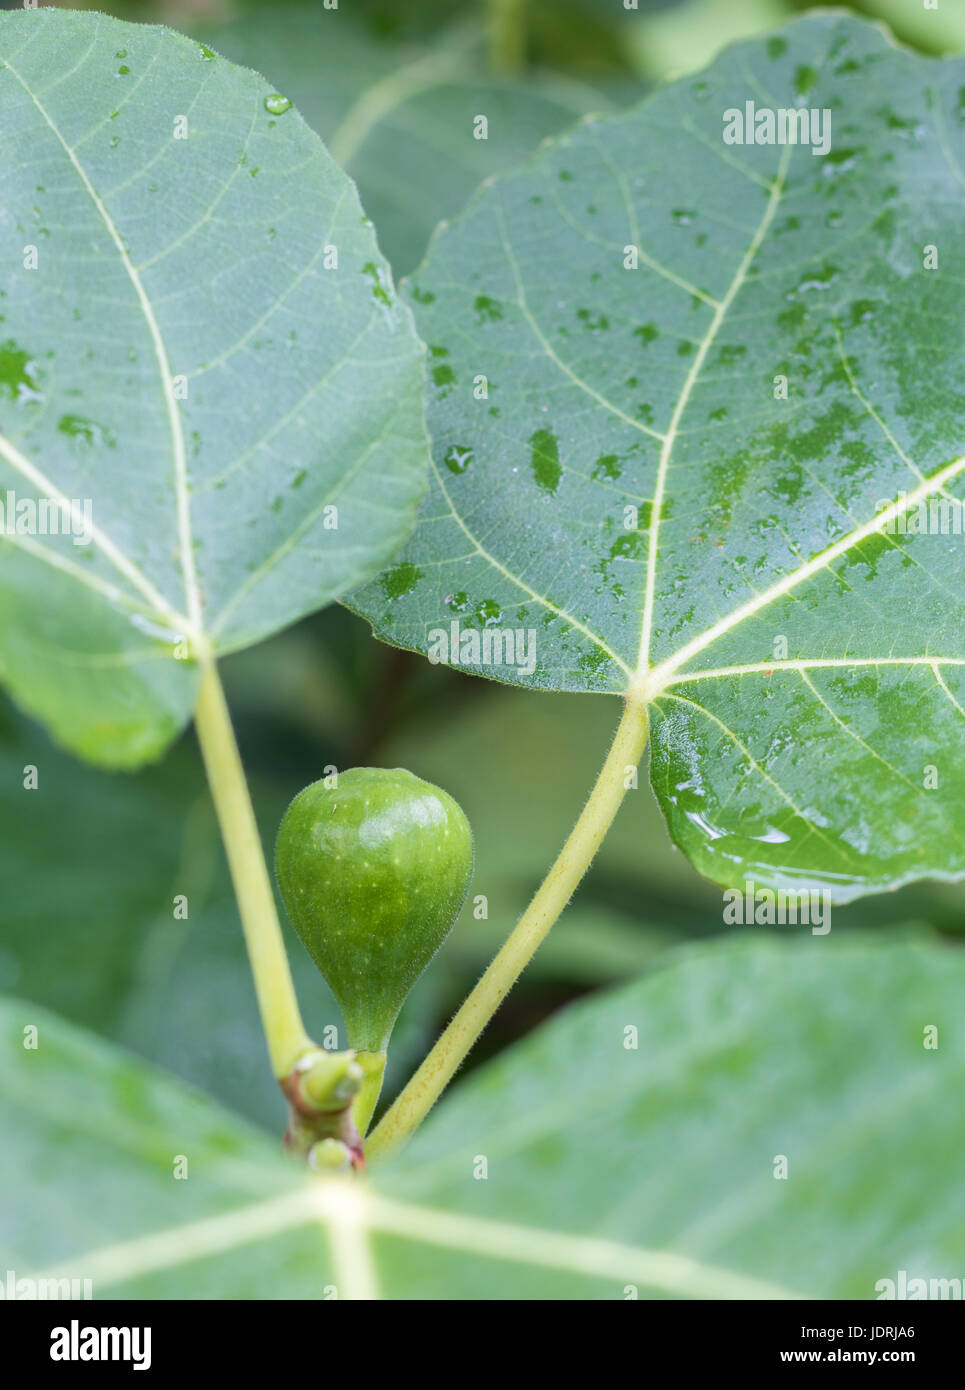 Vertical closeup photo of a green fig ripening on a tree with the green leaves in soft focus in the background with - Stock Image